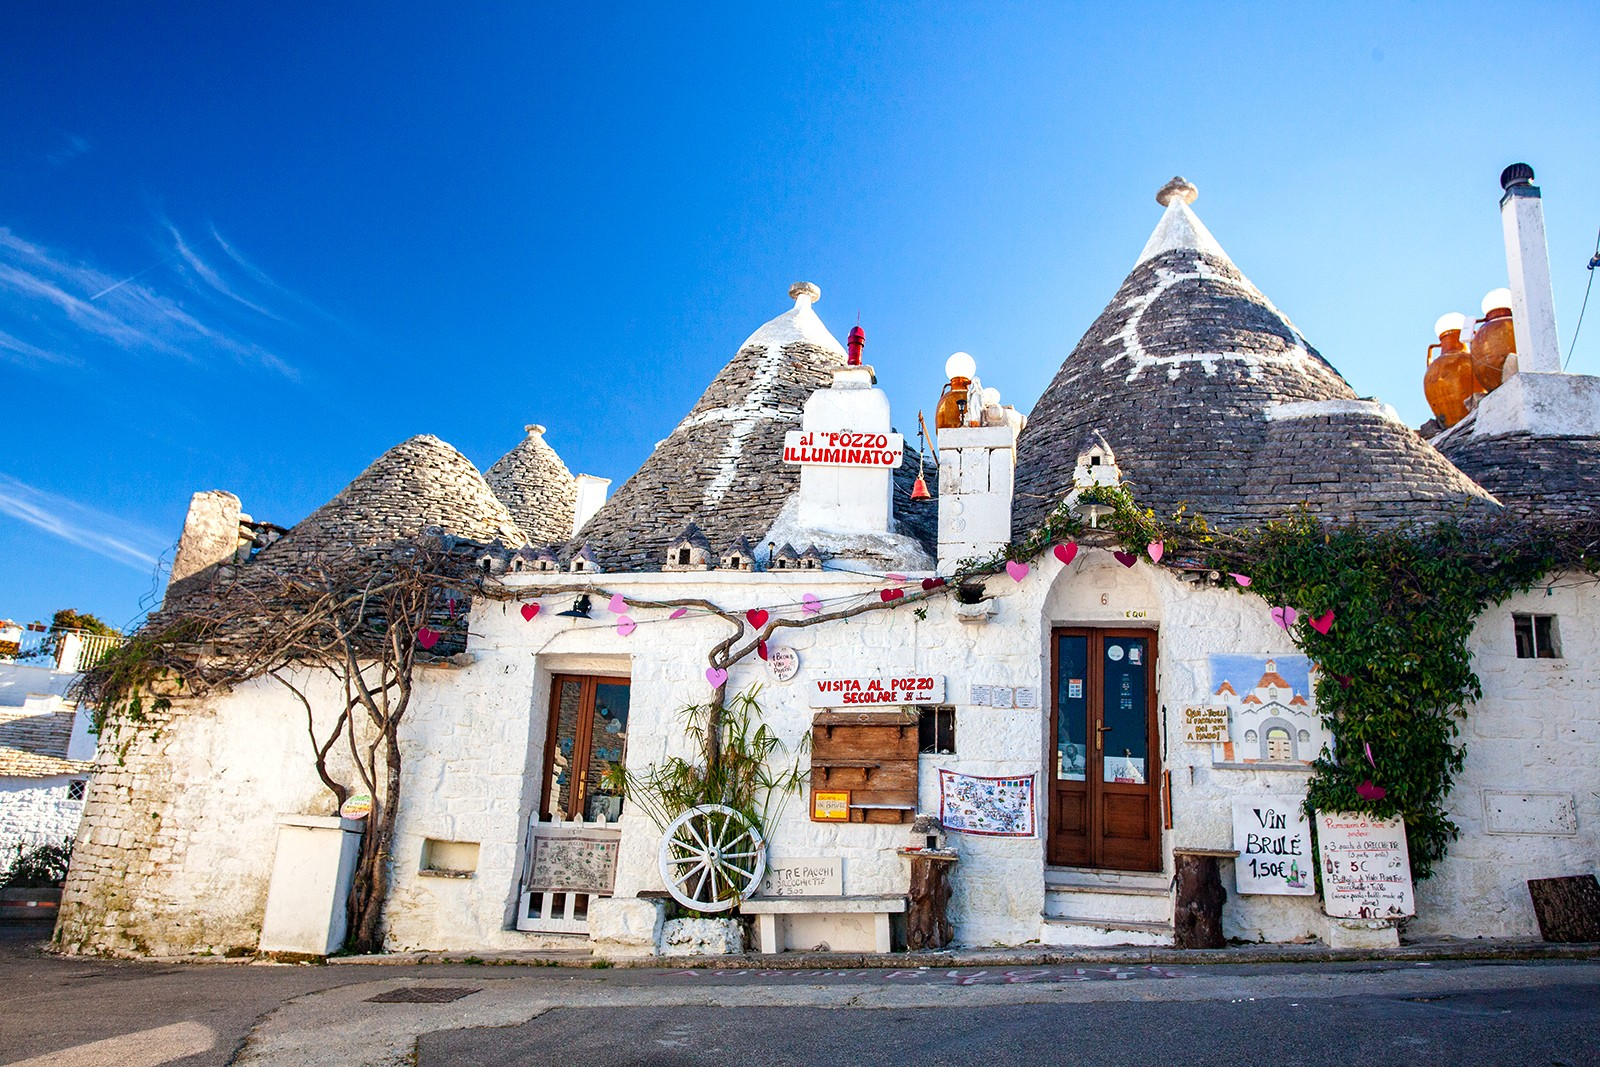 Alberobello Winter